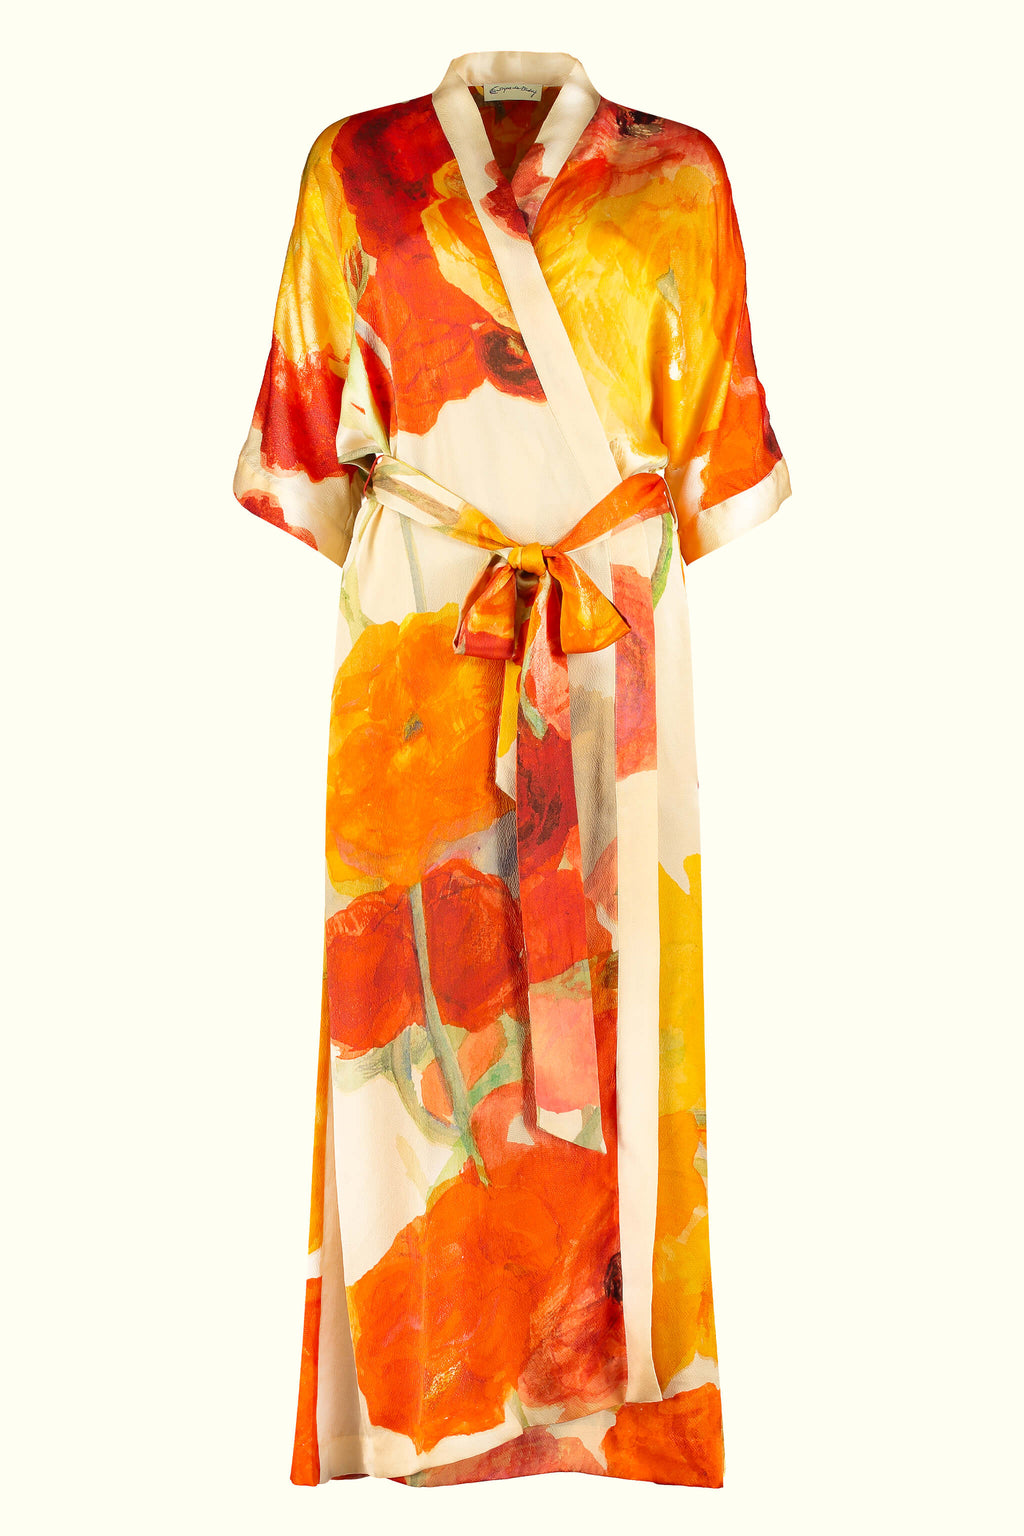 A luxury British silk robe by GVE in cream and scarlet Ranunculus print design.